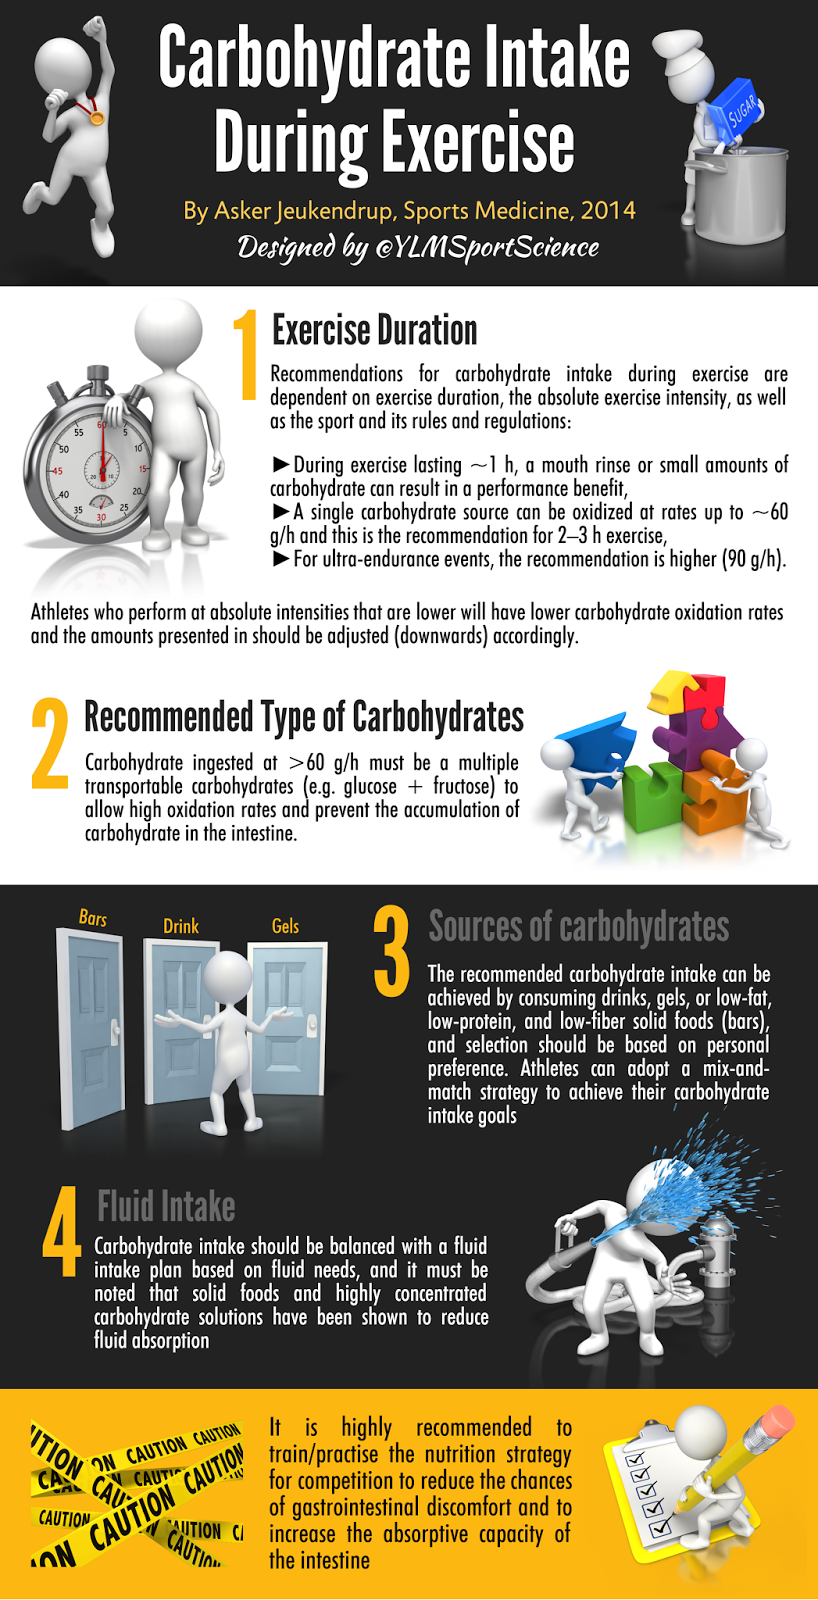 #Nutrition #Competition | Carbohydrate Intake During Exercise: How Much is Needed?